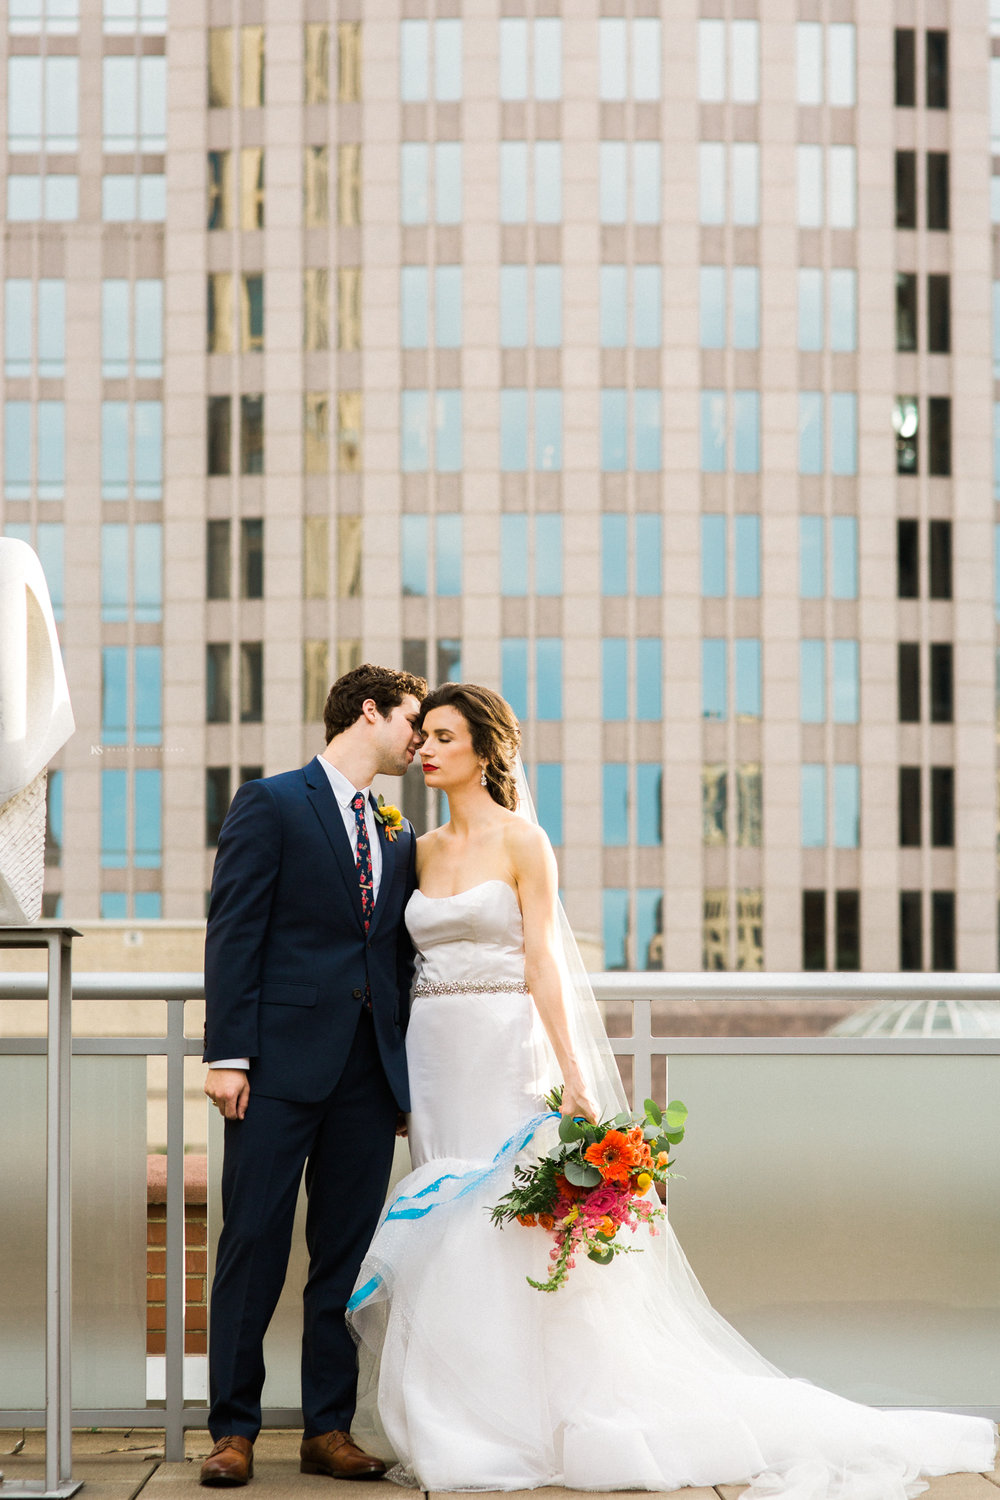 Amanda & Nat - Wed - Charlotte, North Carolina - © Kaitlyn Stoddard-Carter-2.jpg